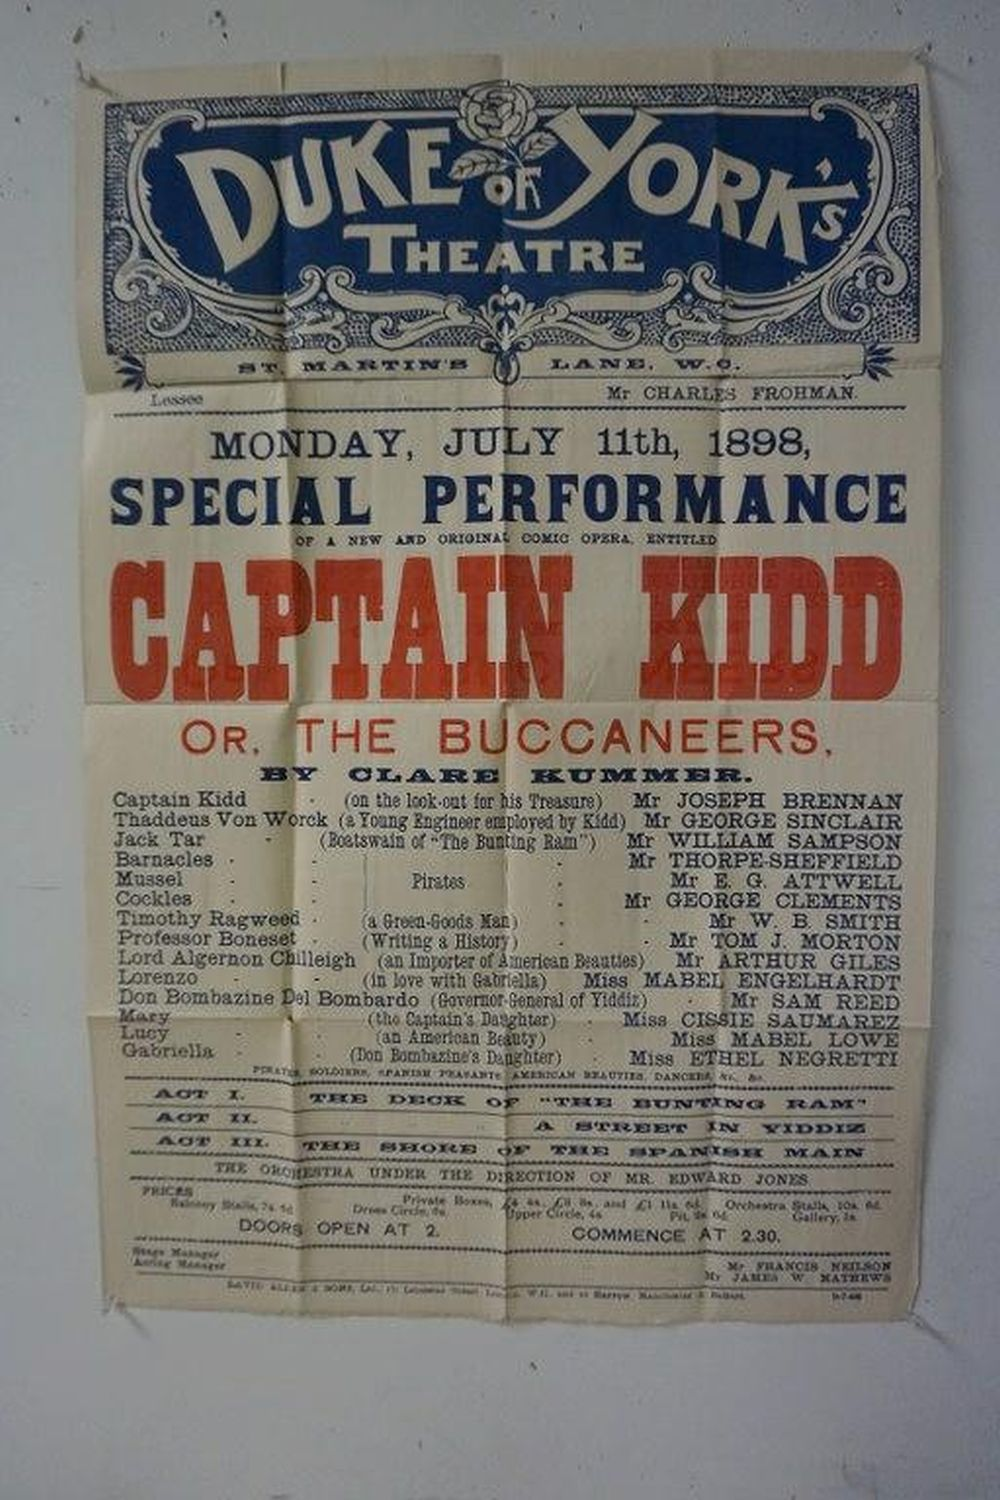 "DUKE OF YORK THEATRE CAPTAIN KIDD BROADSIDE, CIRCA LATE 1890'S. FOLDED, FOUND IN LOCAL ESTATE, MEASURES 30"" X 20"". NICE CONDITION."